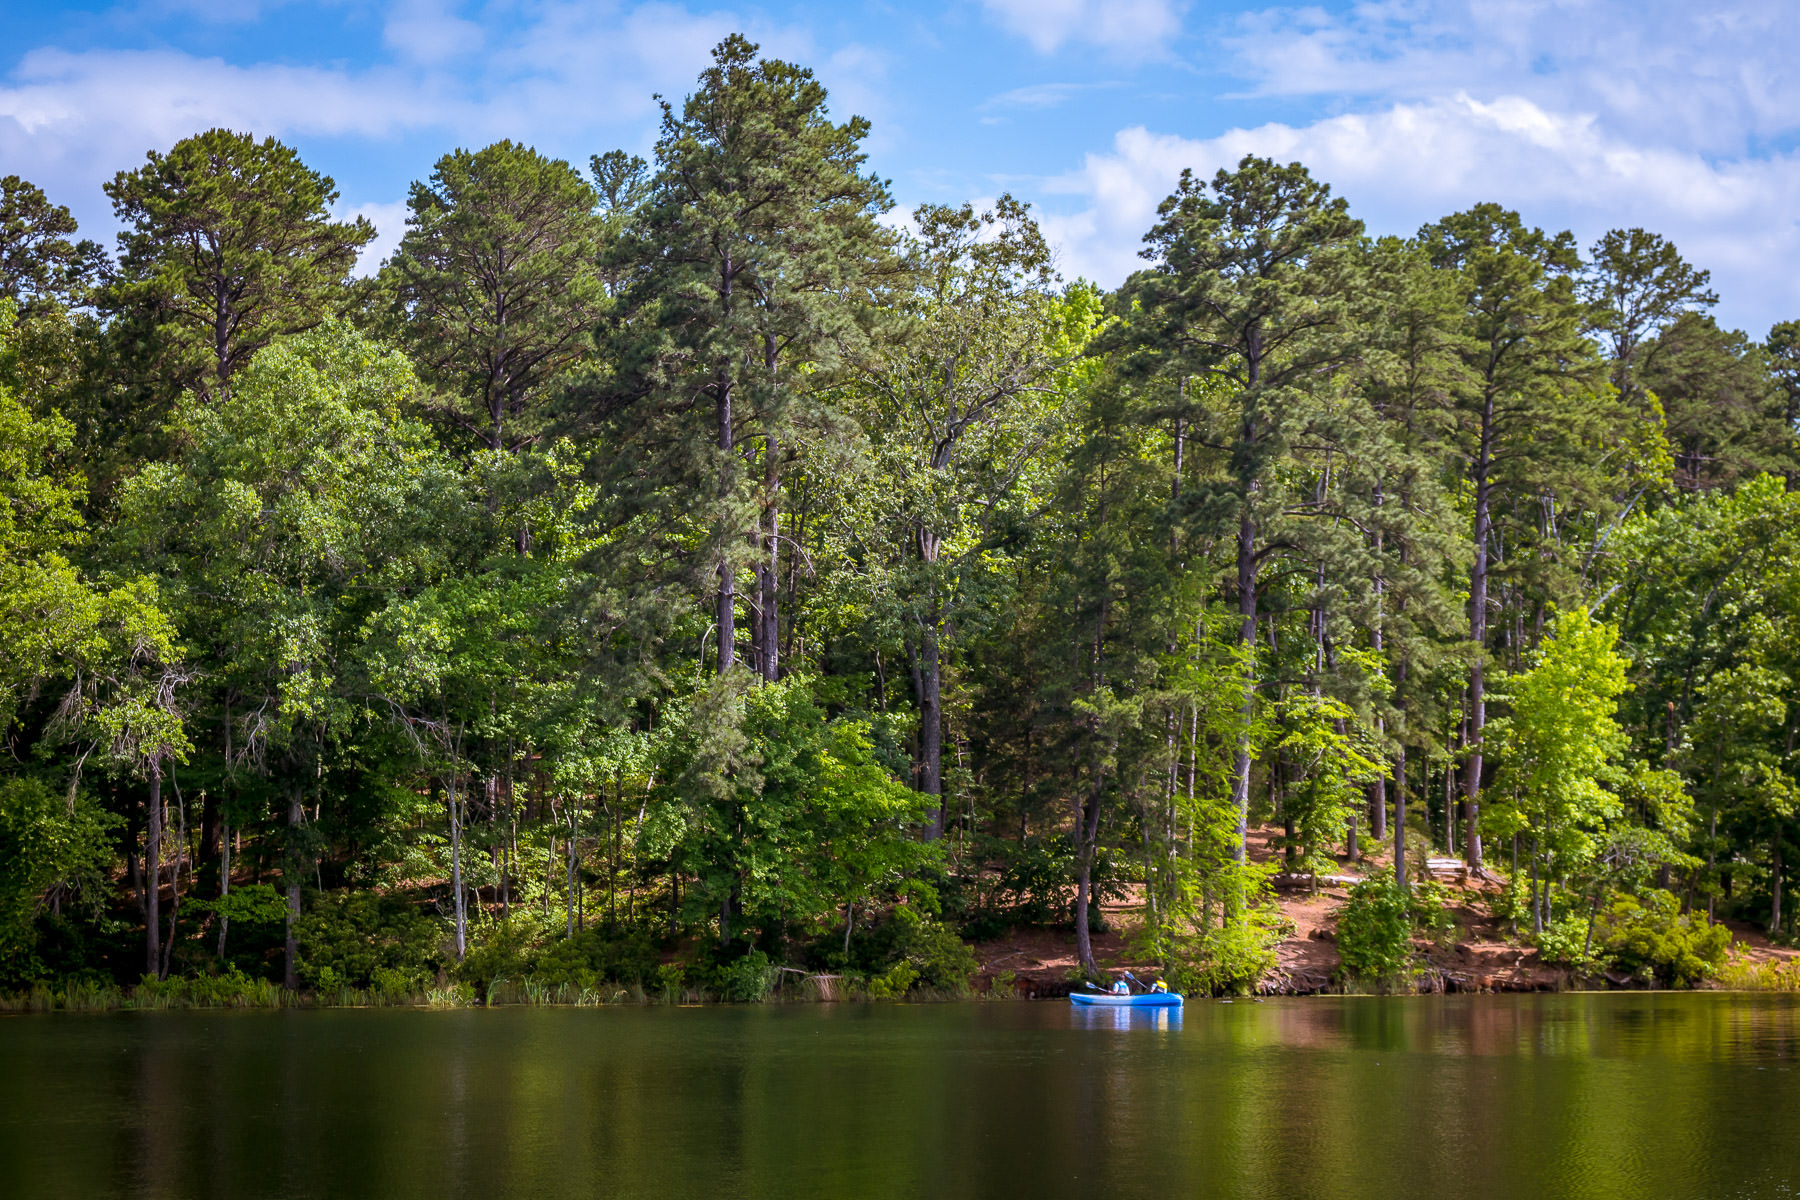 Boaters paddle along the pine tree-covered shoreline of the lake at Tyler State Park, Texas.